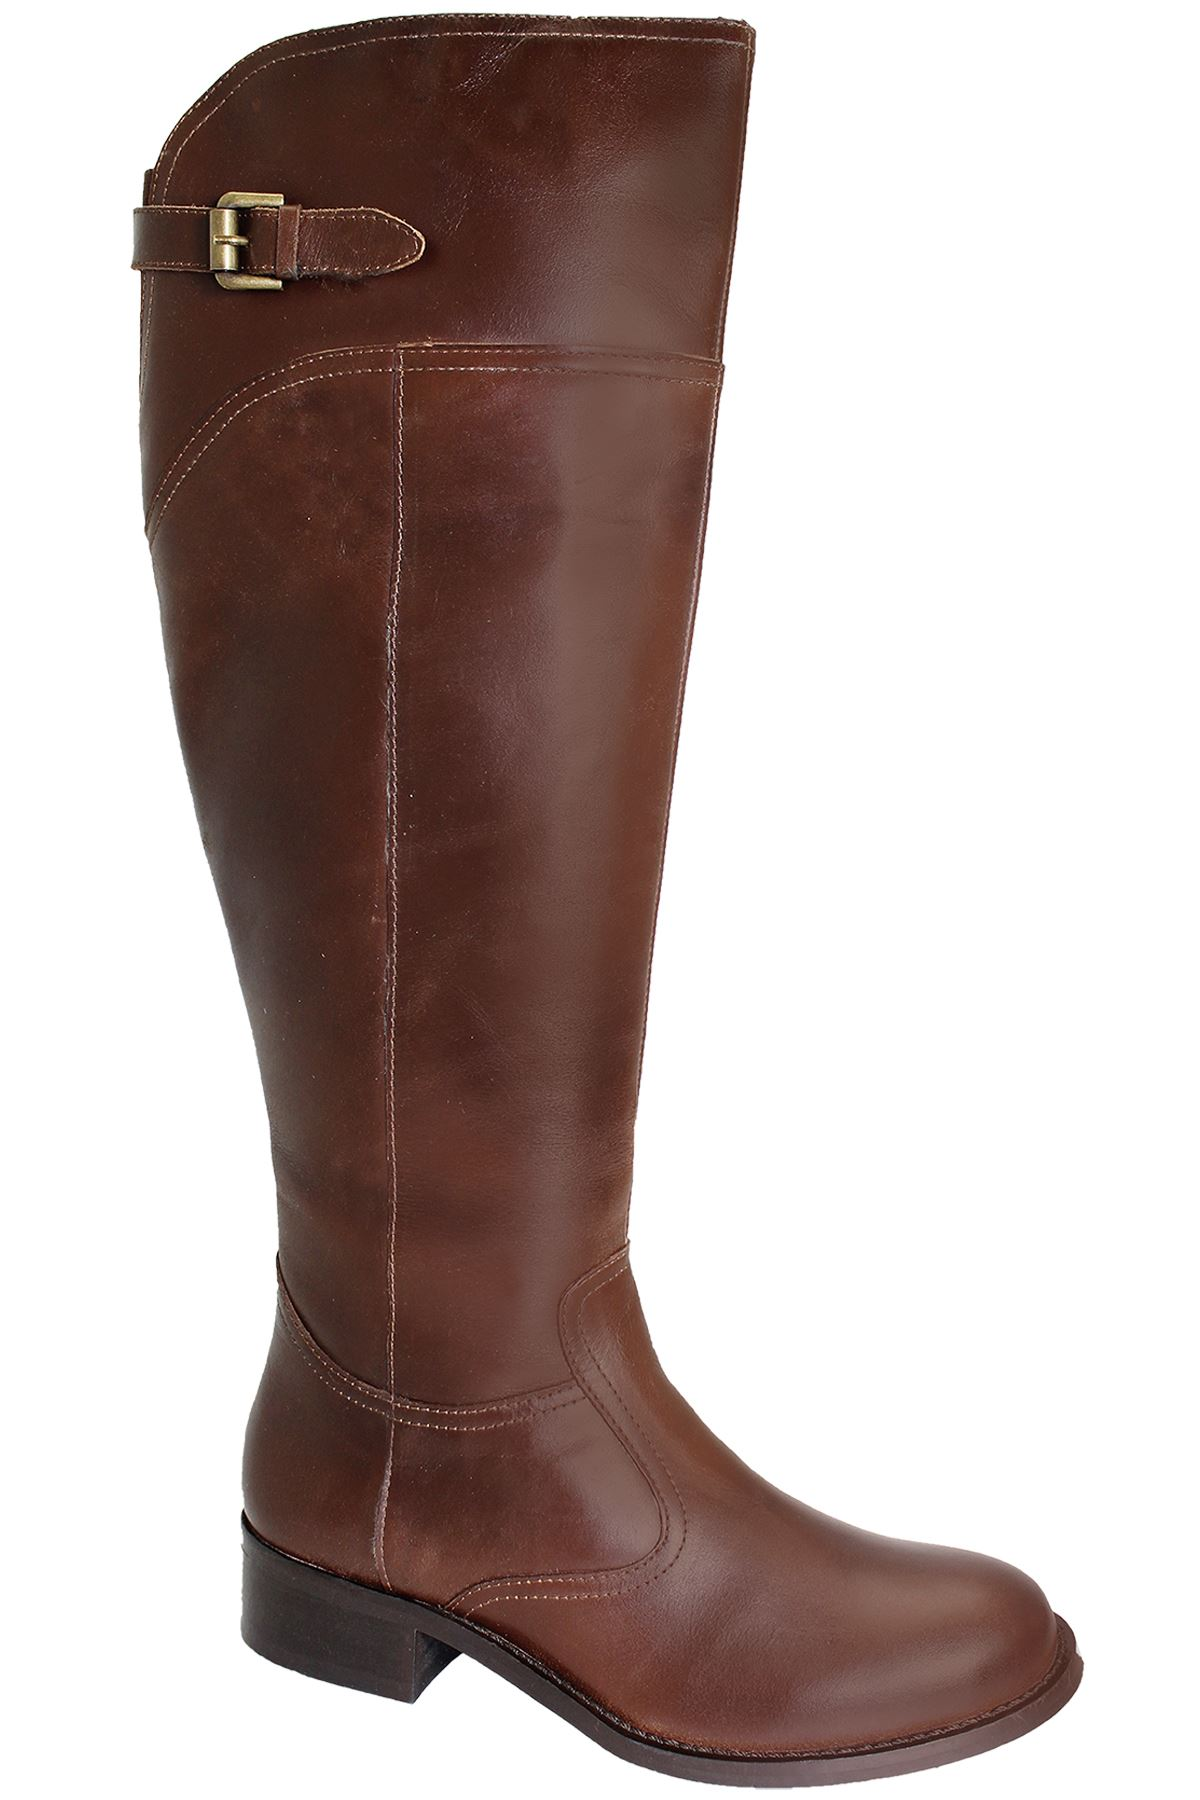 Find great deals on eBay for genuine leather ladies boots. Shop with confidence.